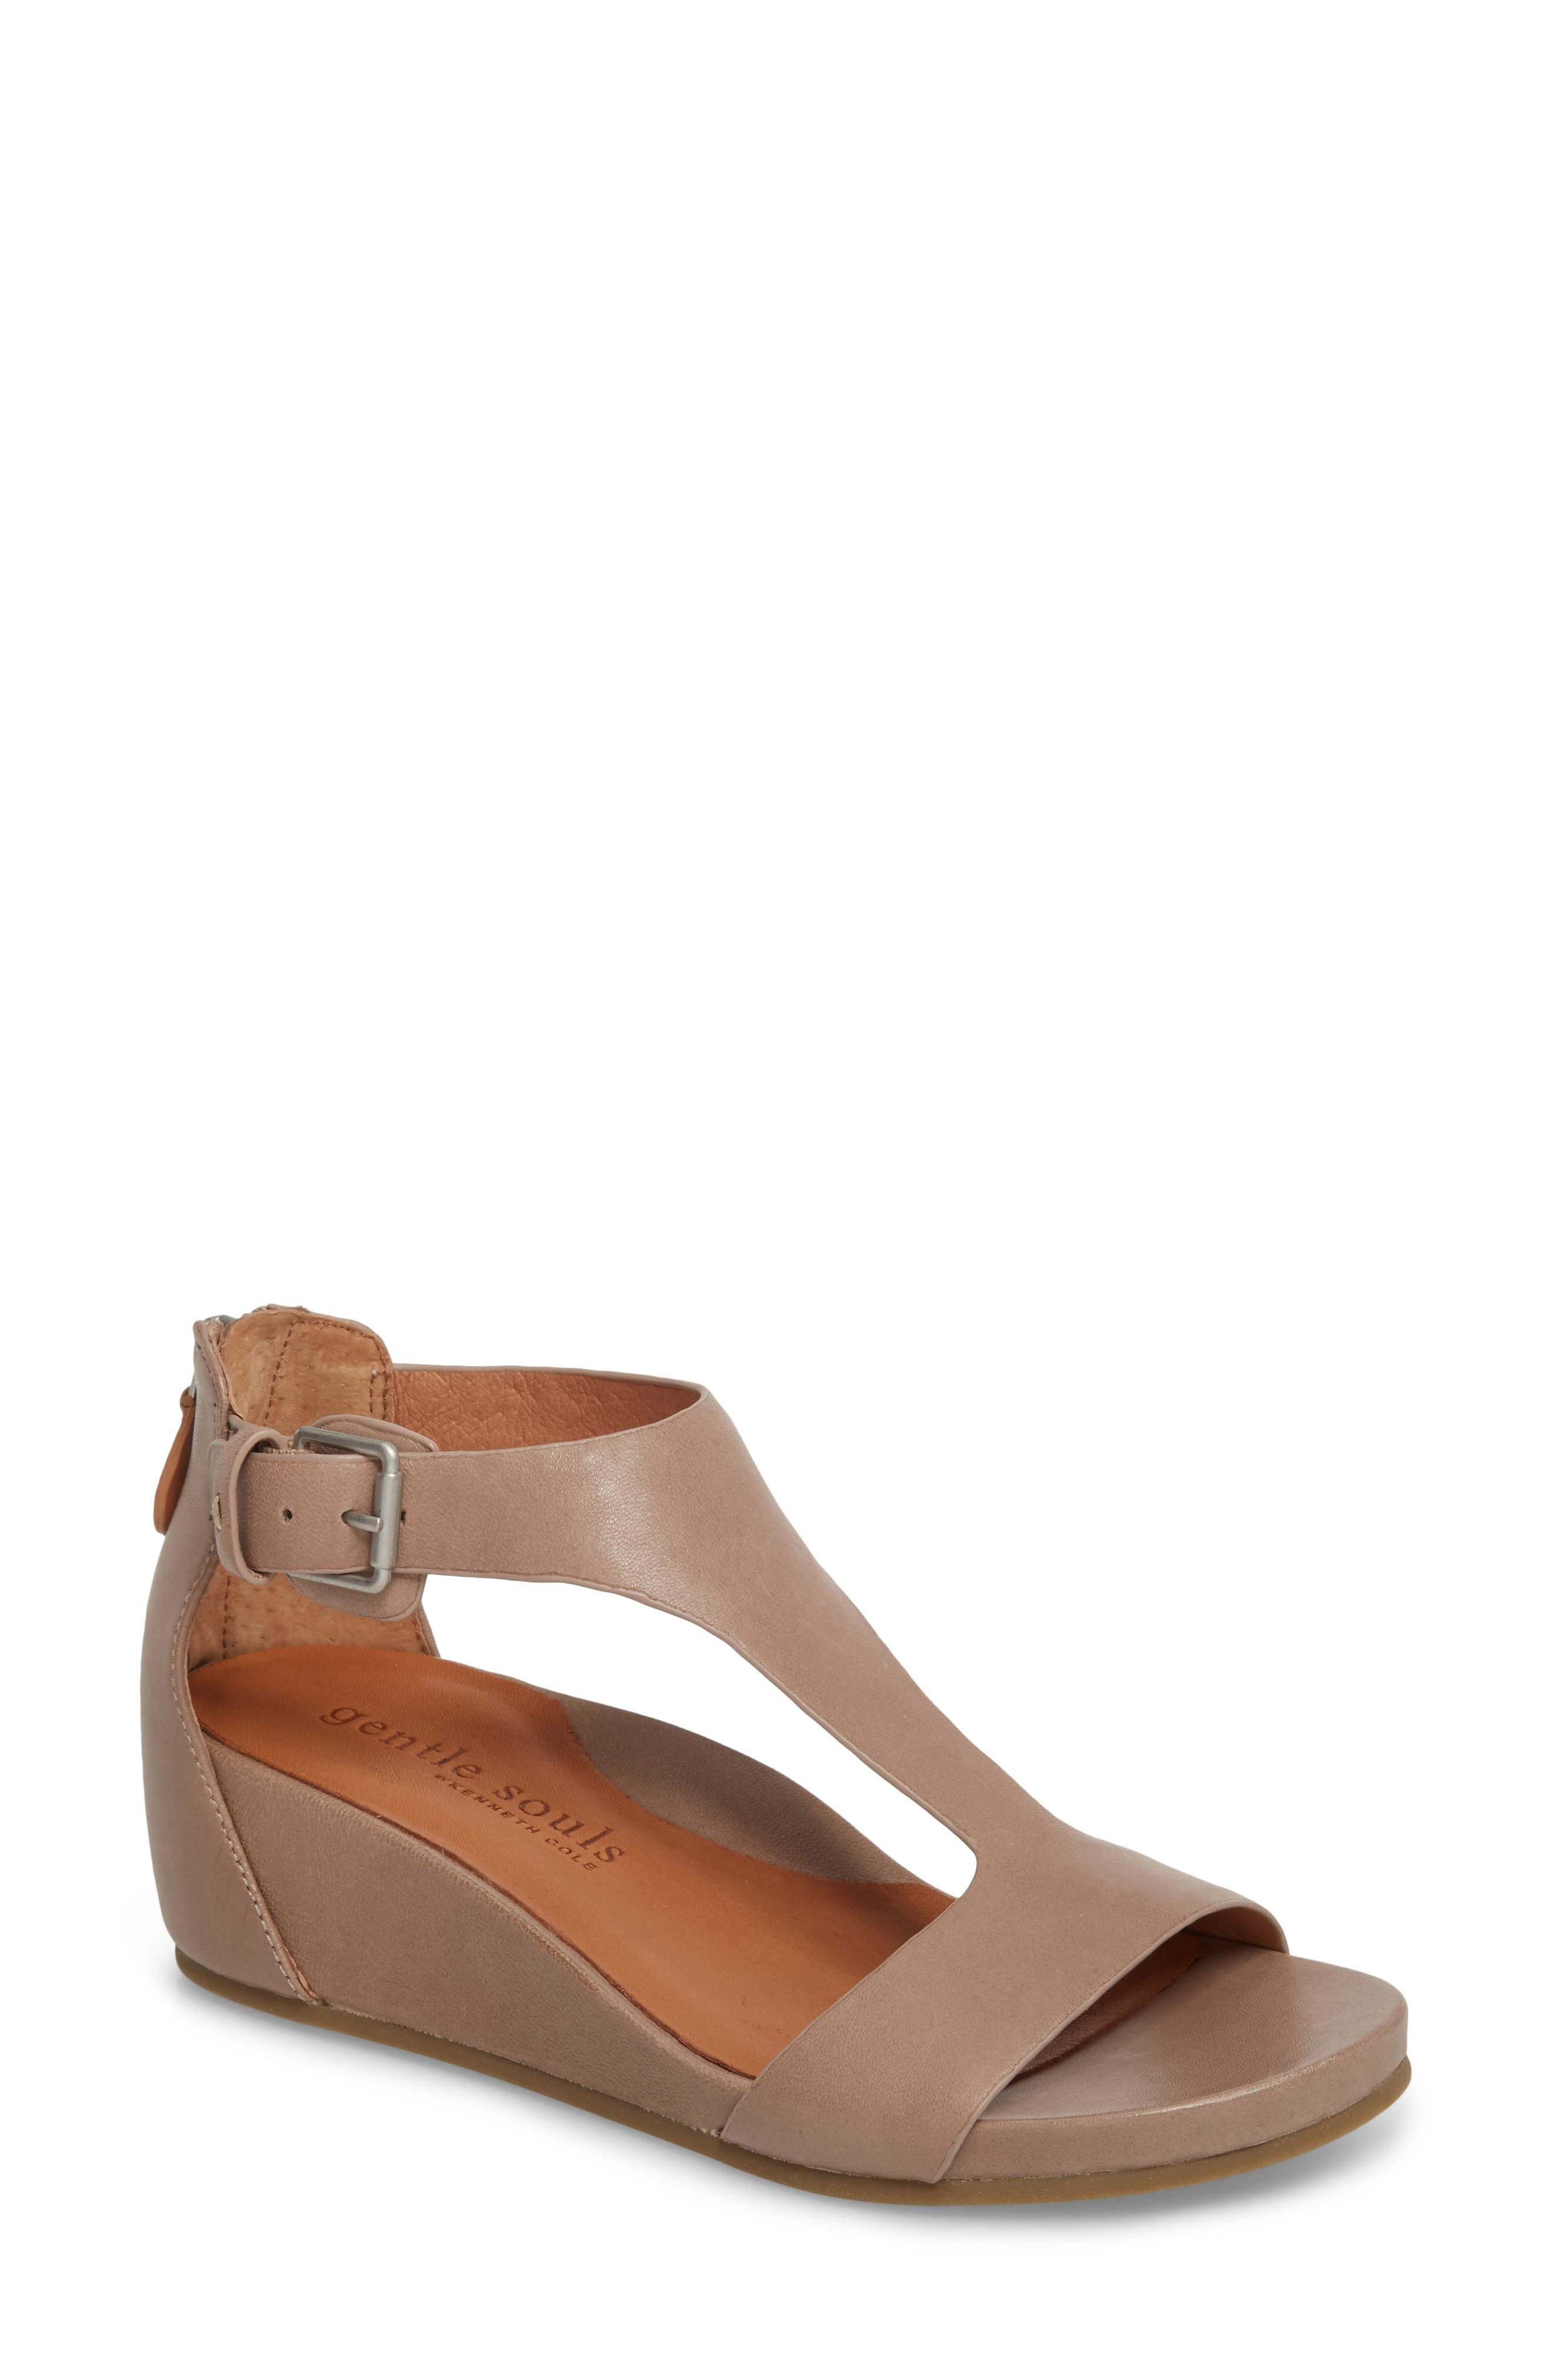 GENTLE SOULS BY KENNETH COLE Gisele Wedge Sandal, Main, color, PUTTY LEATHER